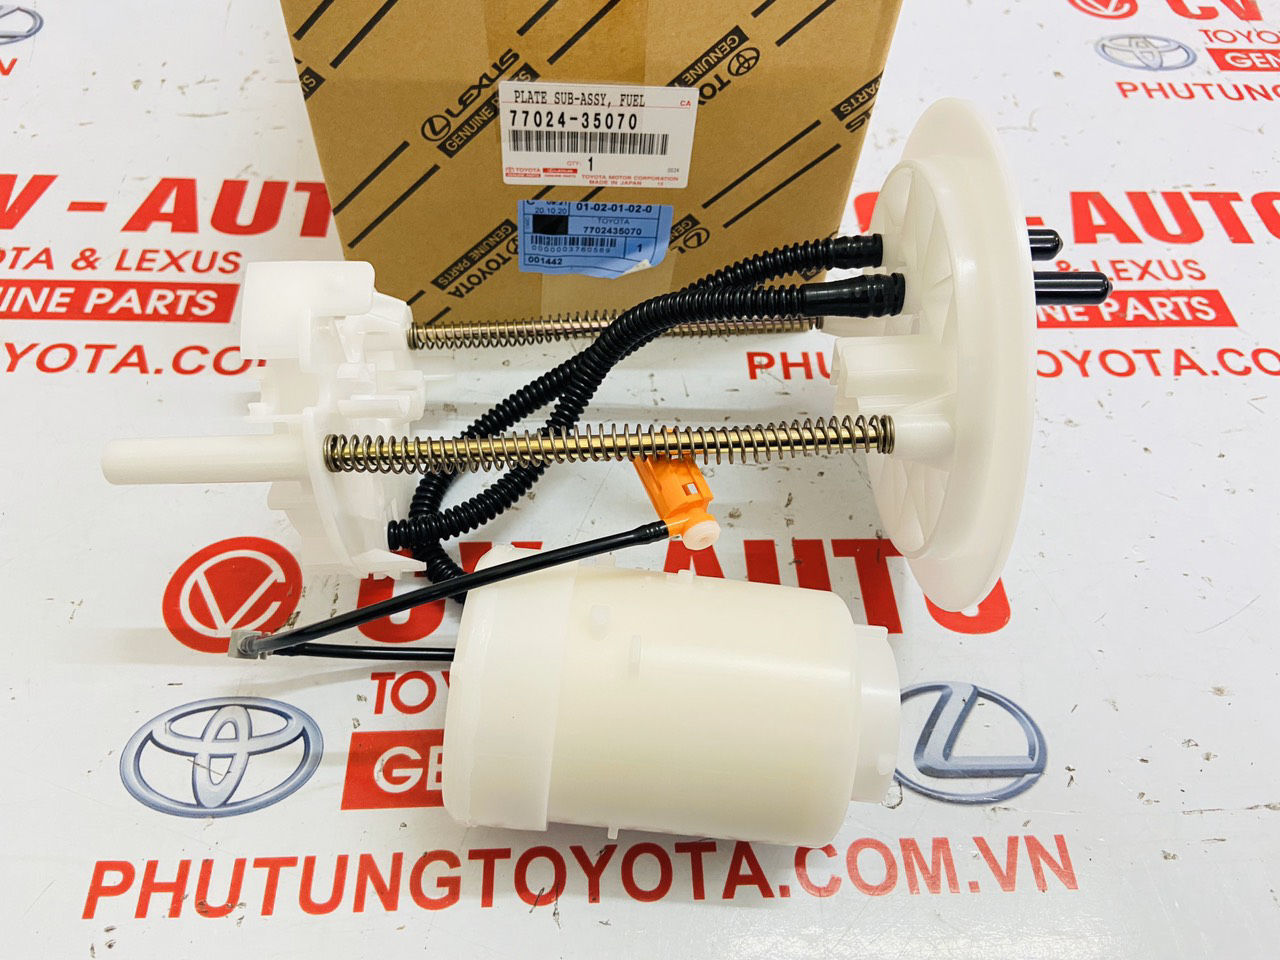 Picture of 77024-35070 Lọc xăng Lexus GX460